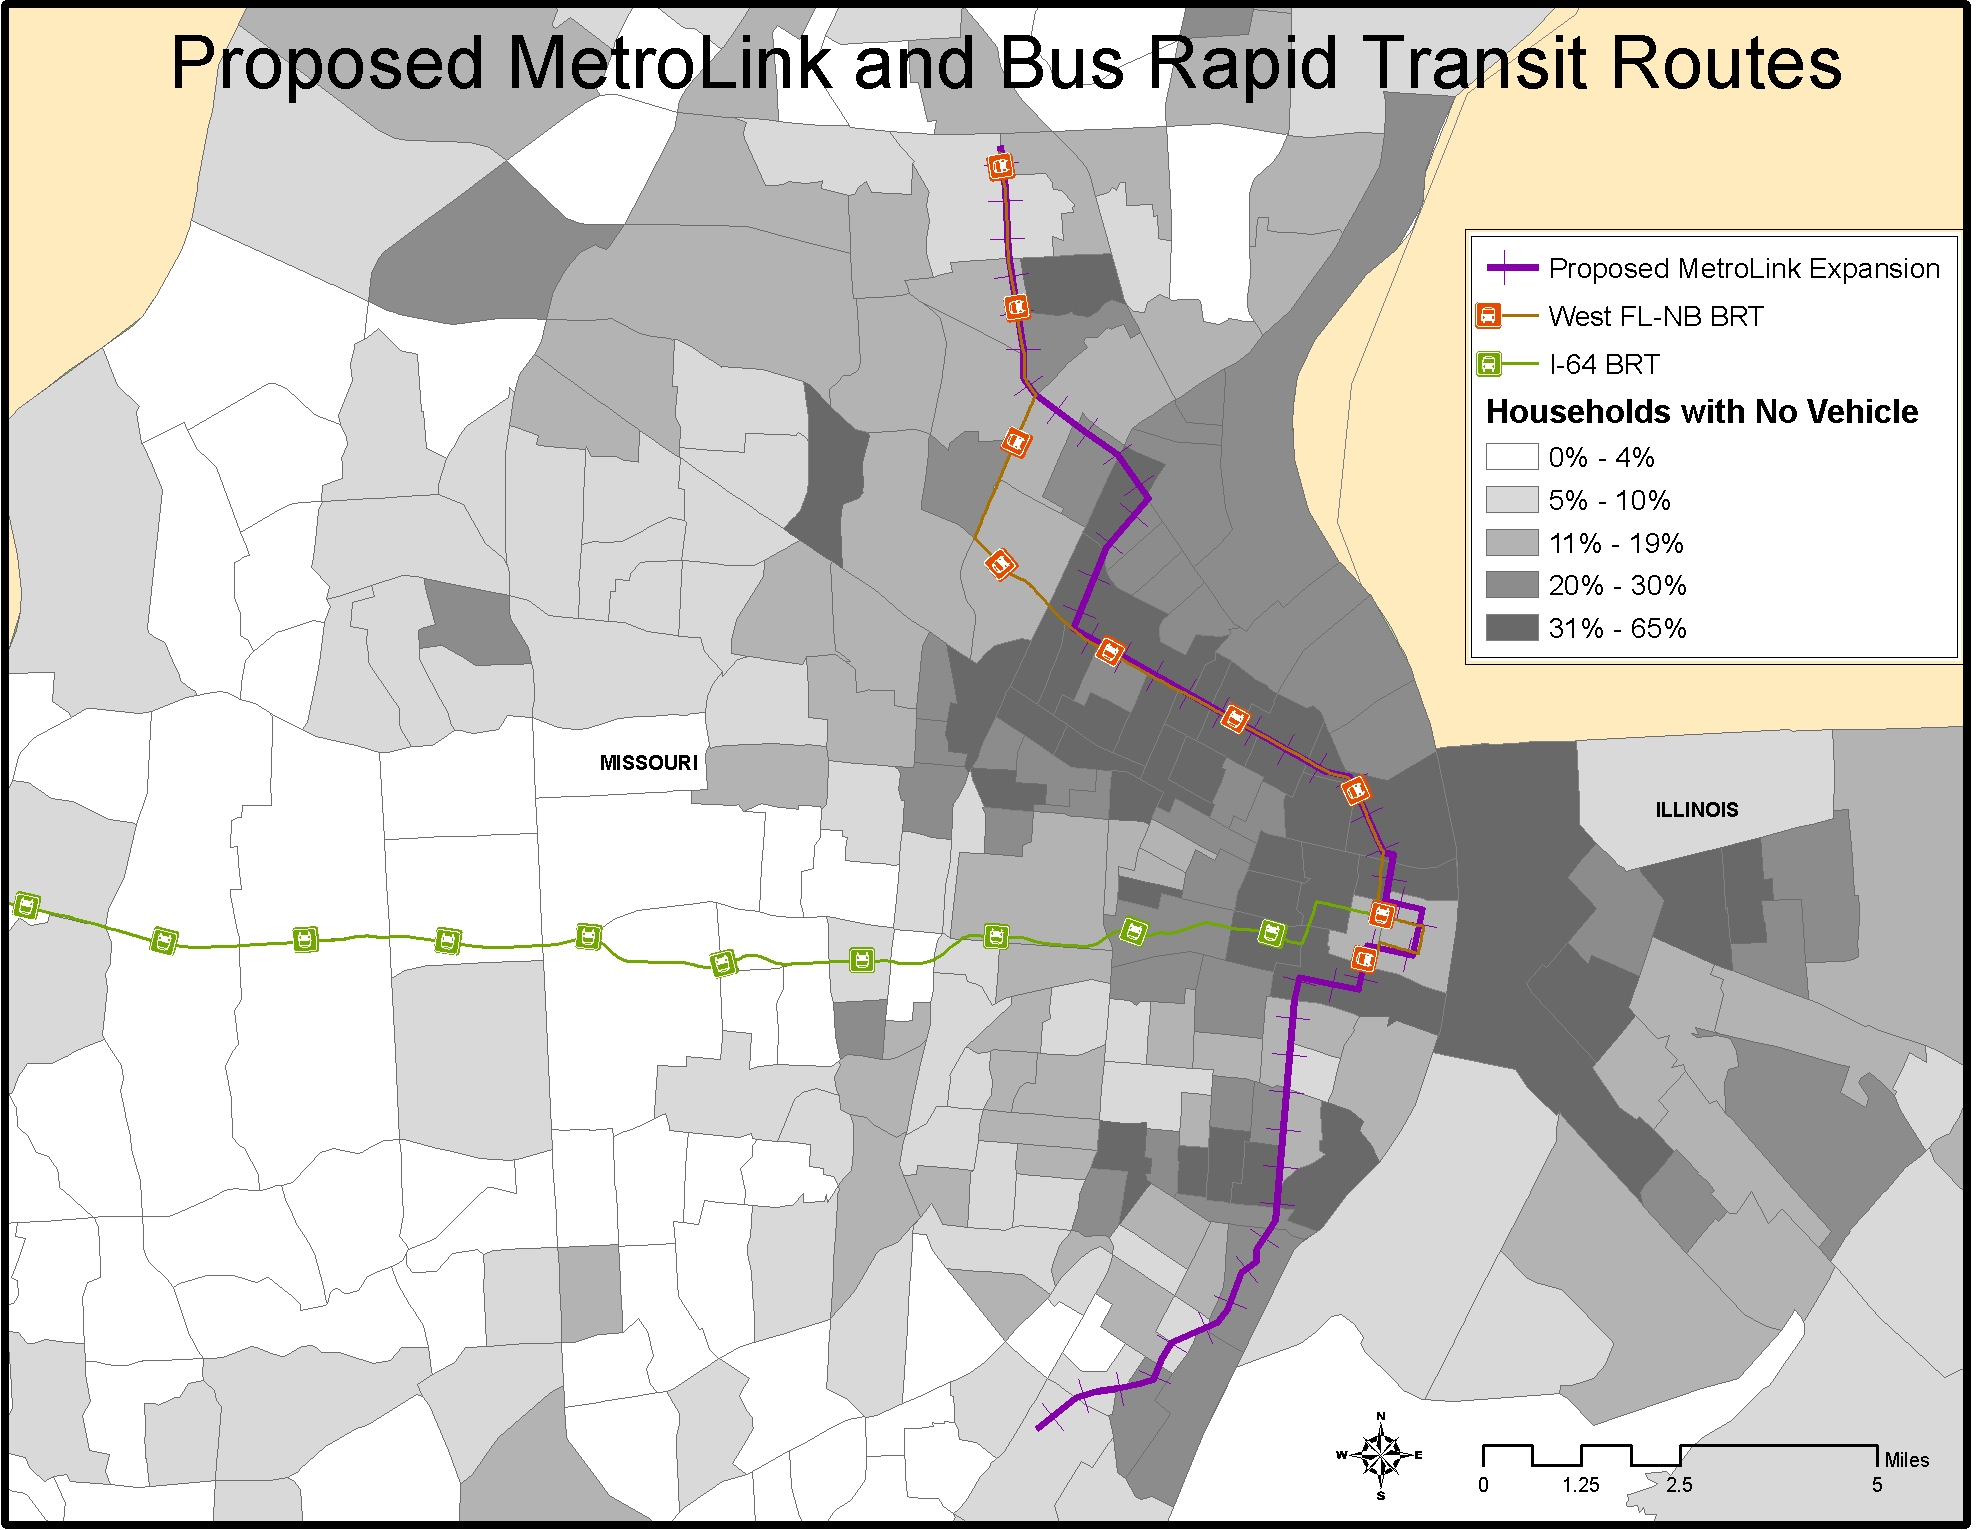 Map Series III Proposed MetroLink and Bus Rapid Transit Routes